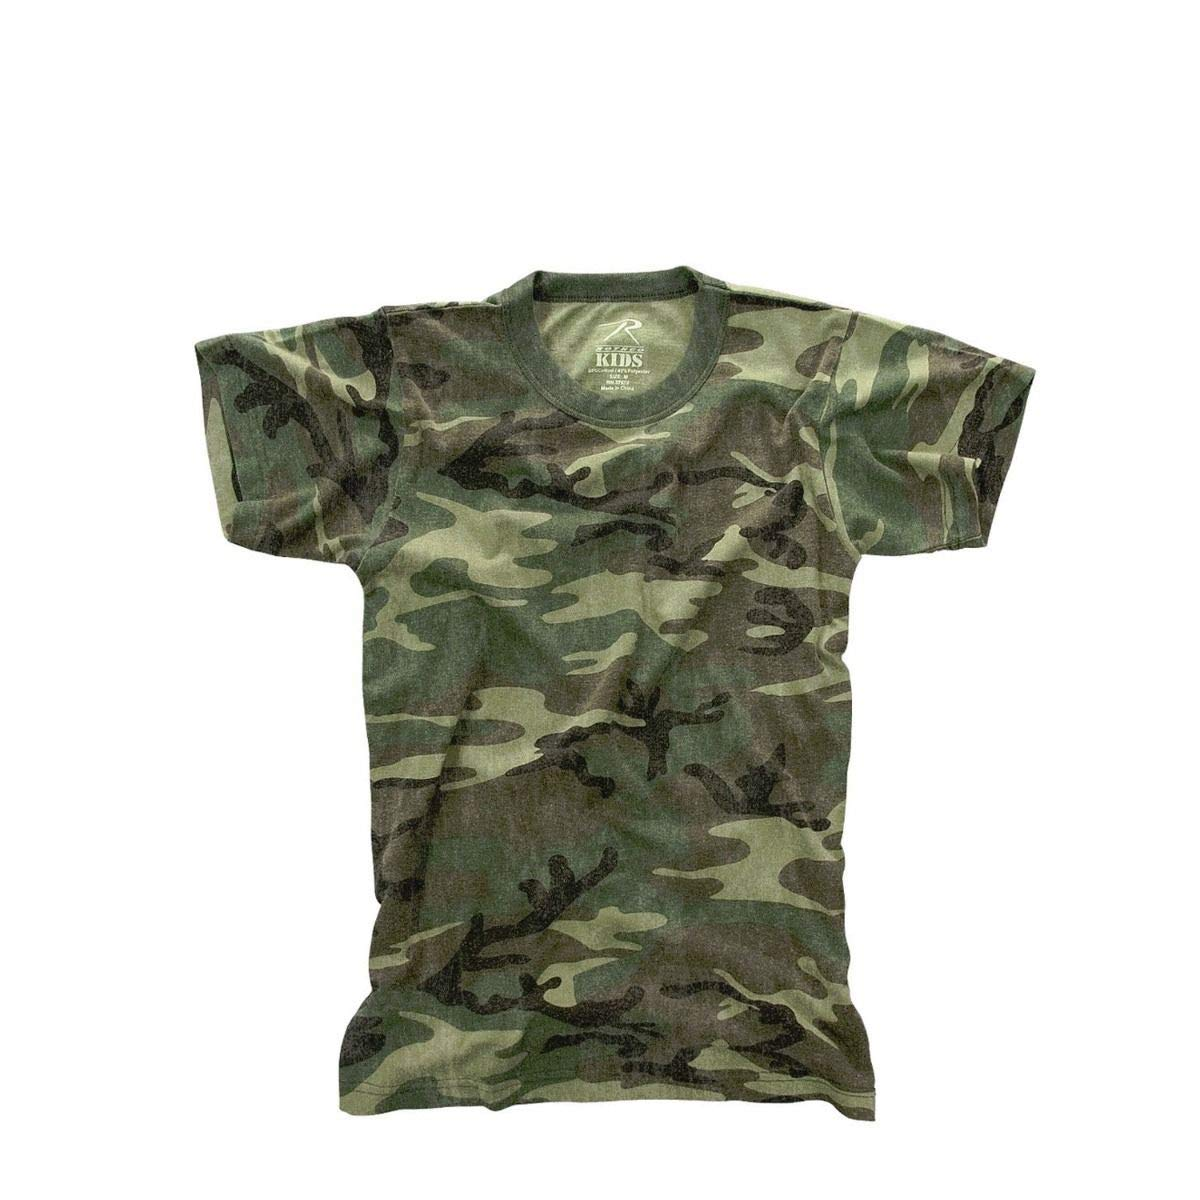 CAO outdoor product Kids Vintage Camo Short Sleeve T-Shirt